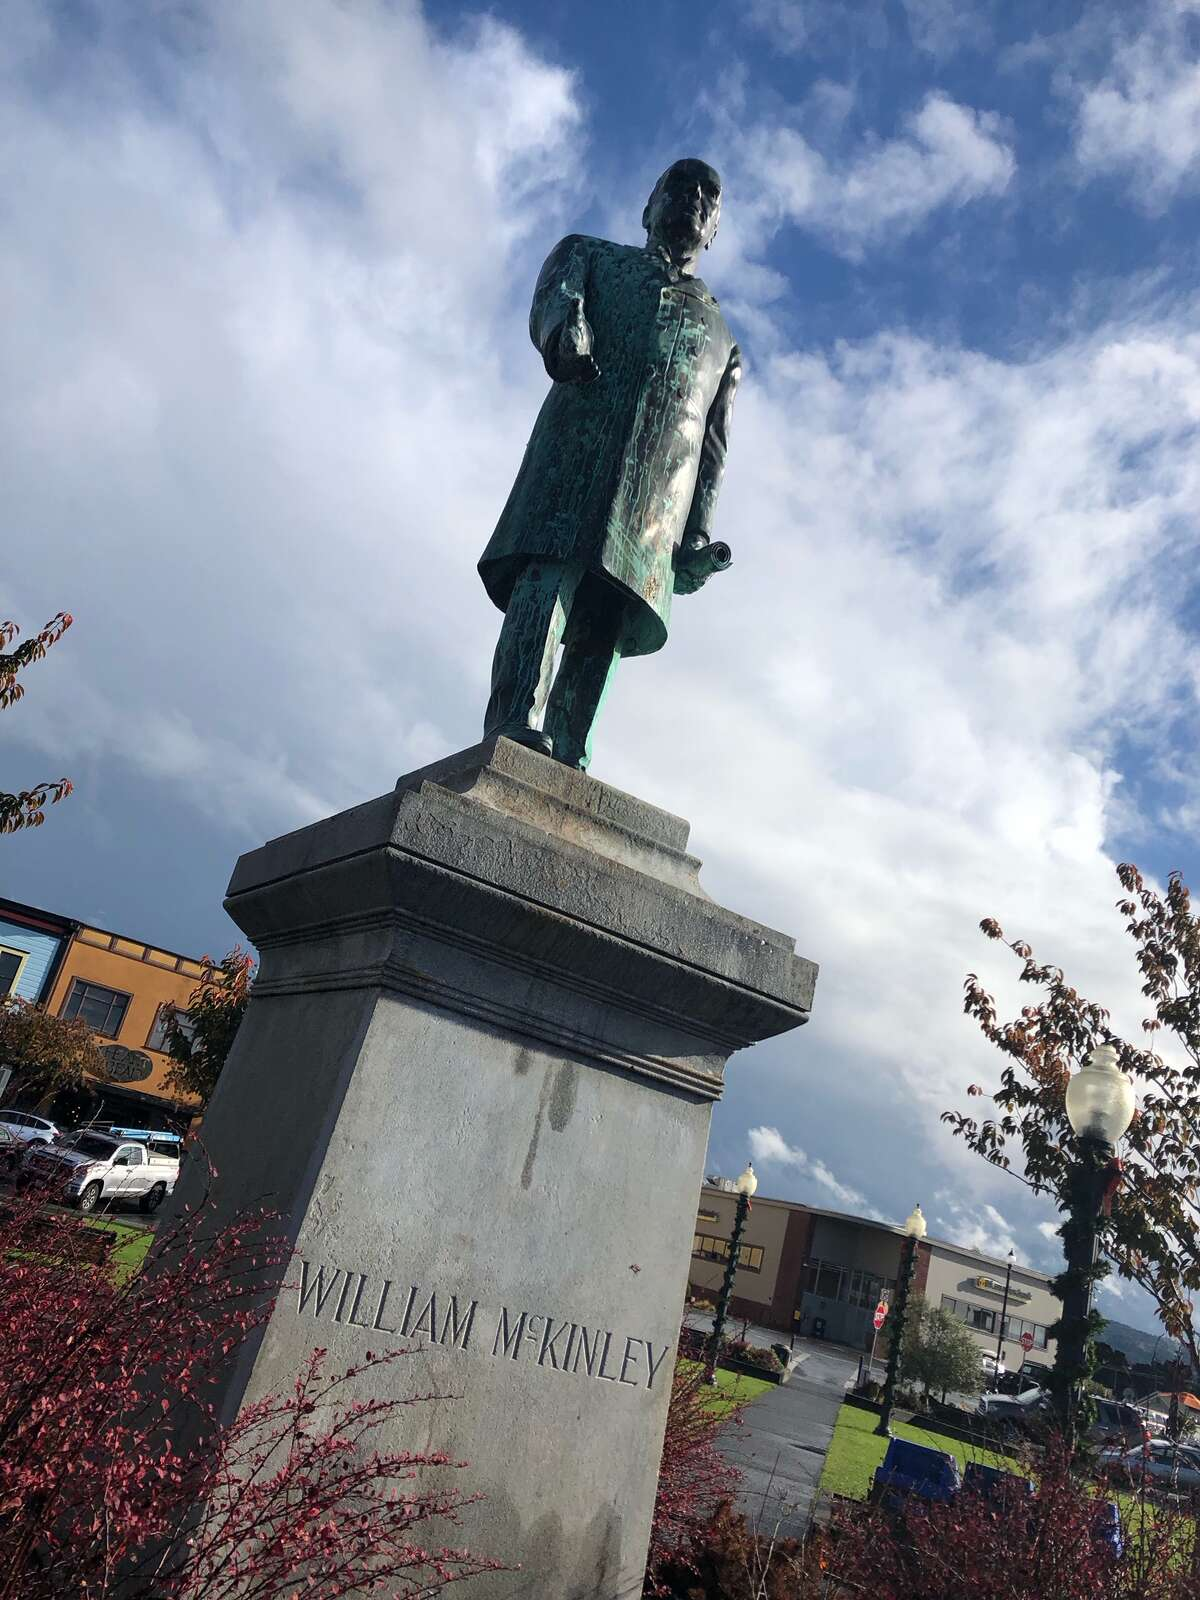 This statue of William McKinley survived the 1906 earthquake and fire in San Francisco before it was moved to Arcata in Humboldt County.